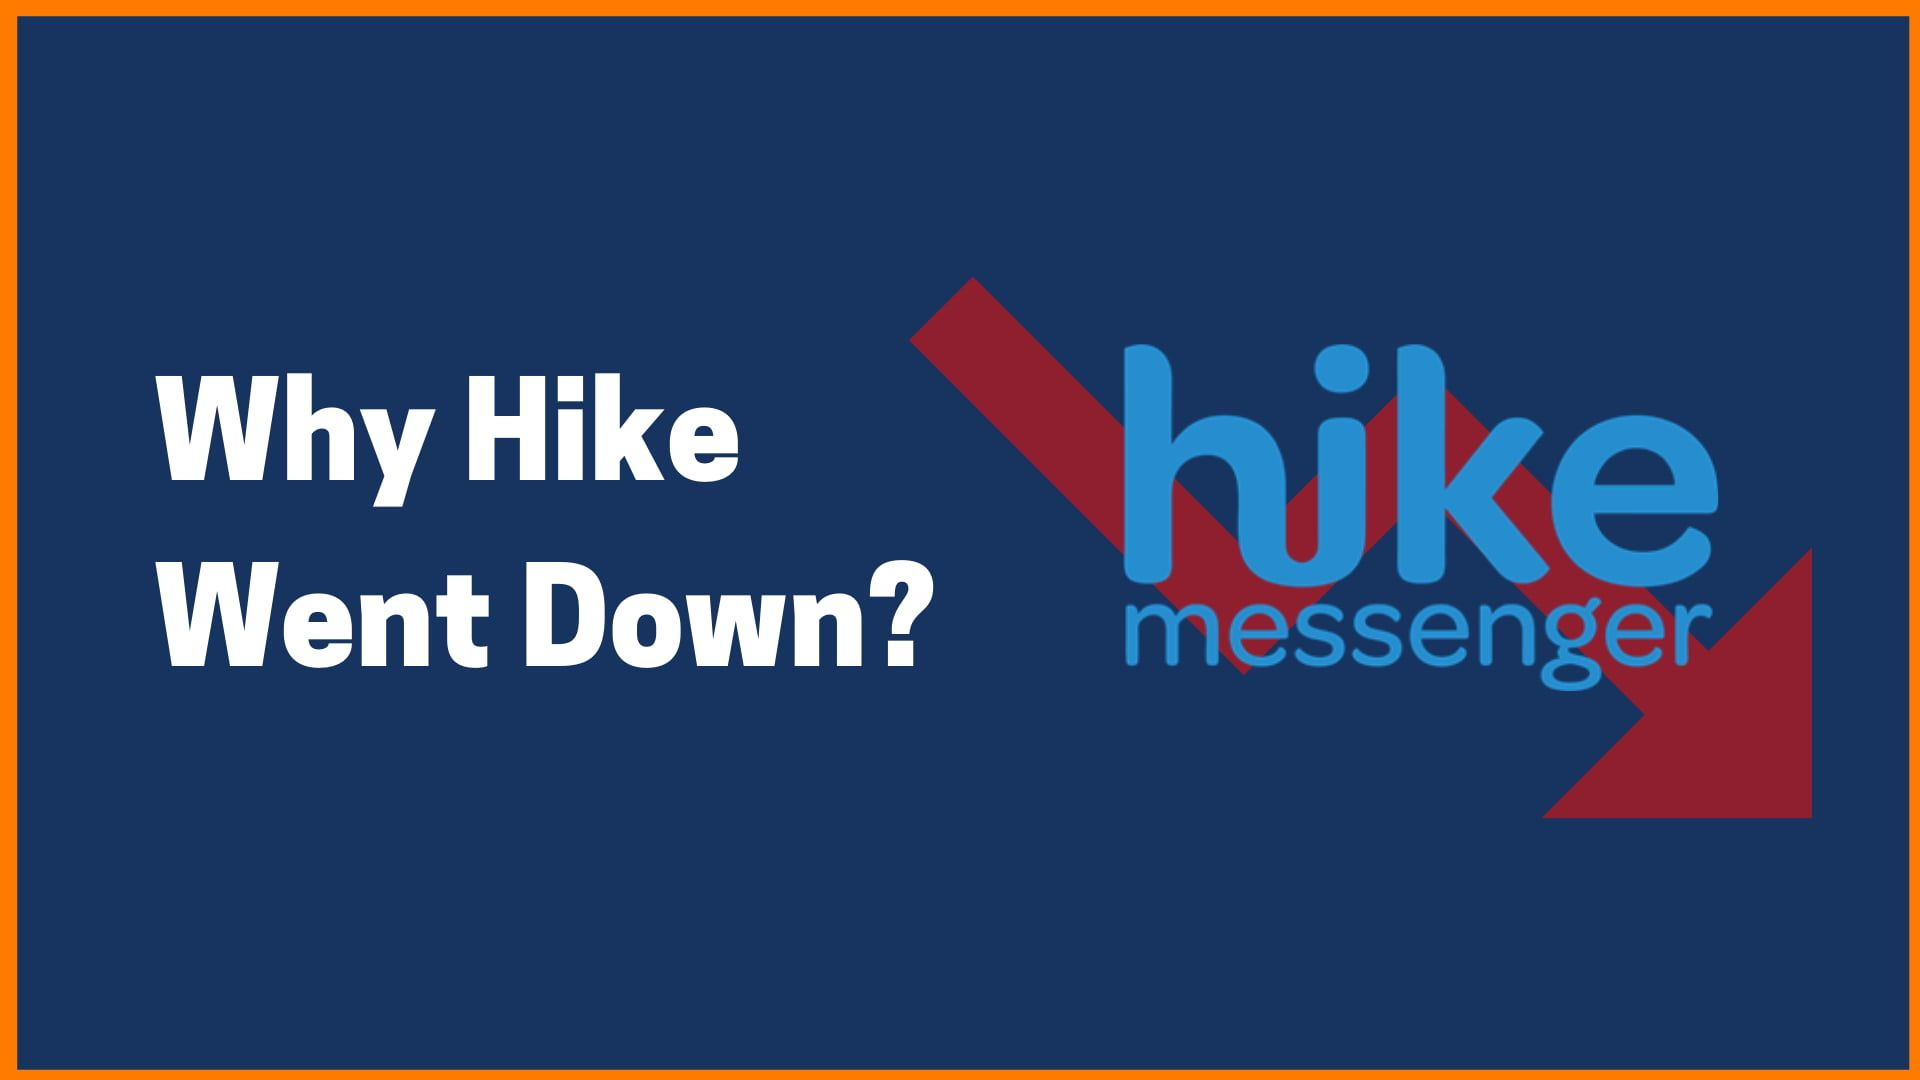 What Happened to Hike Messenger?